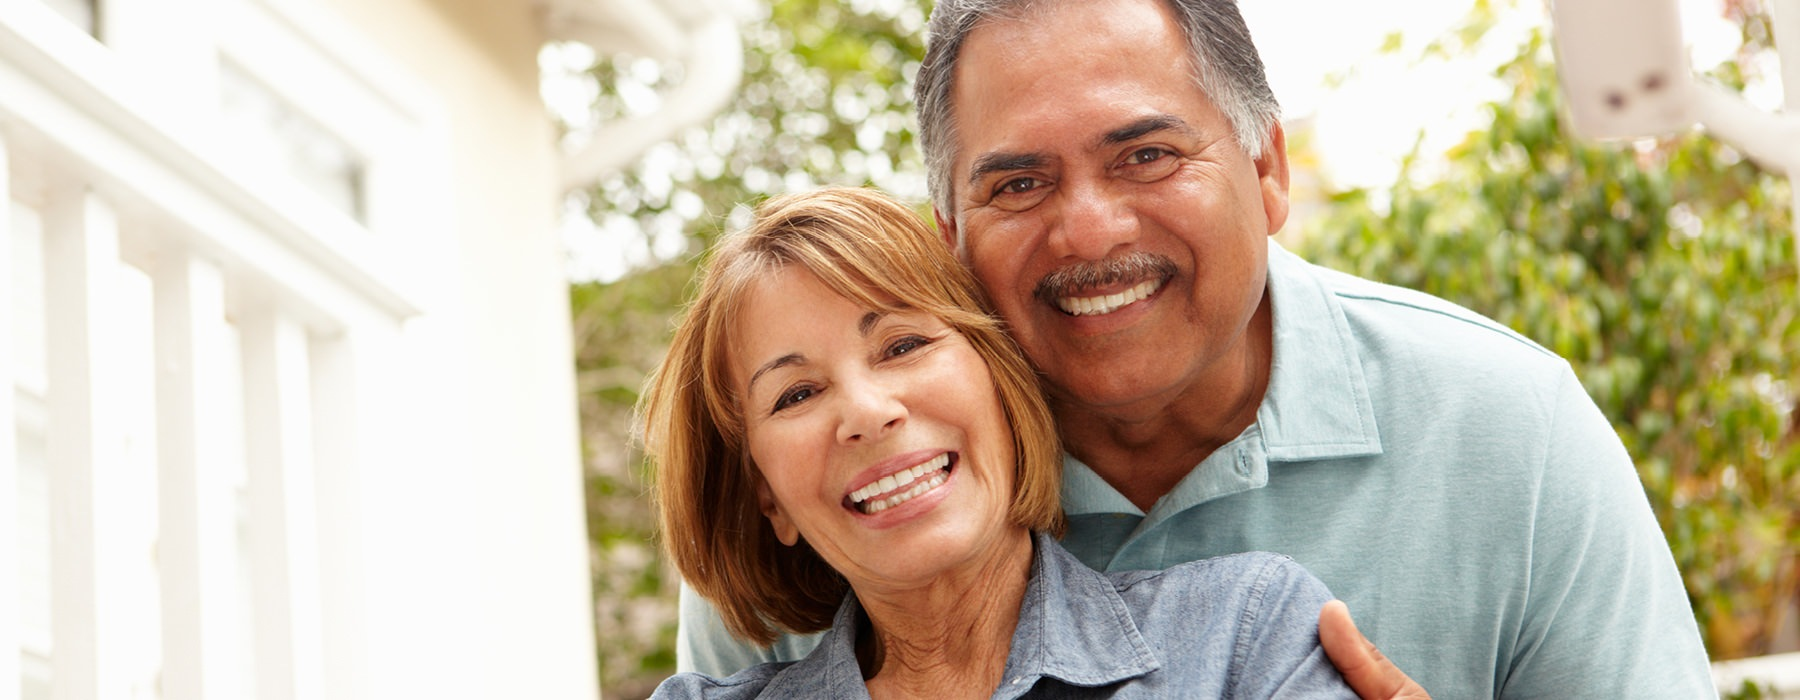 an older couple smiles for the camera outdoors